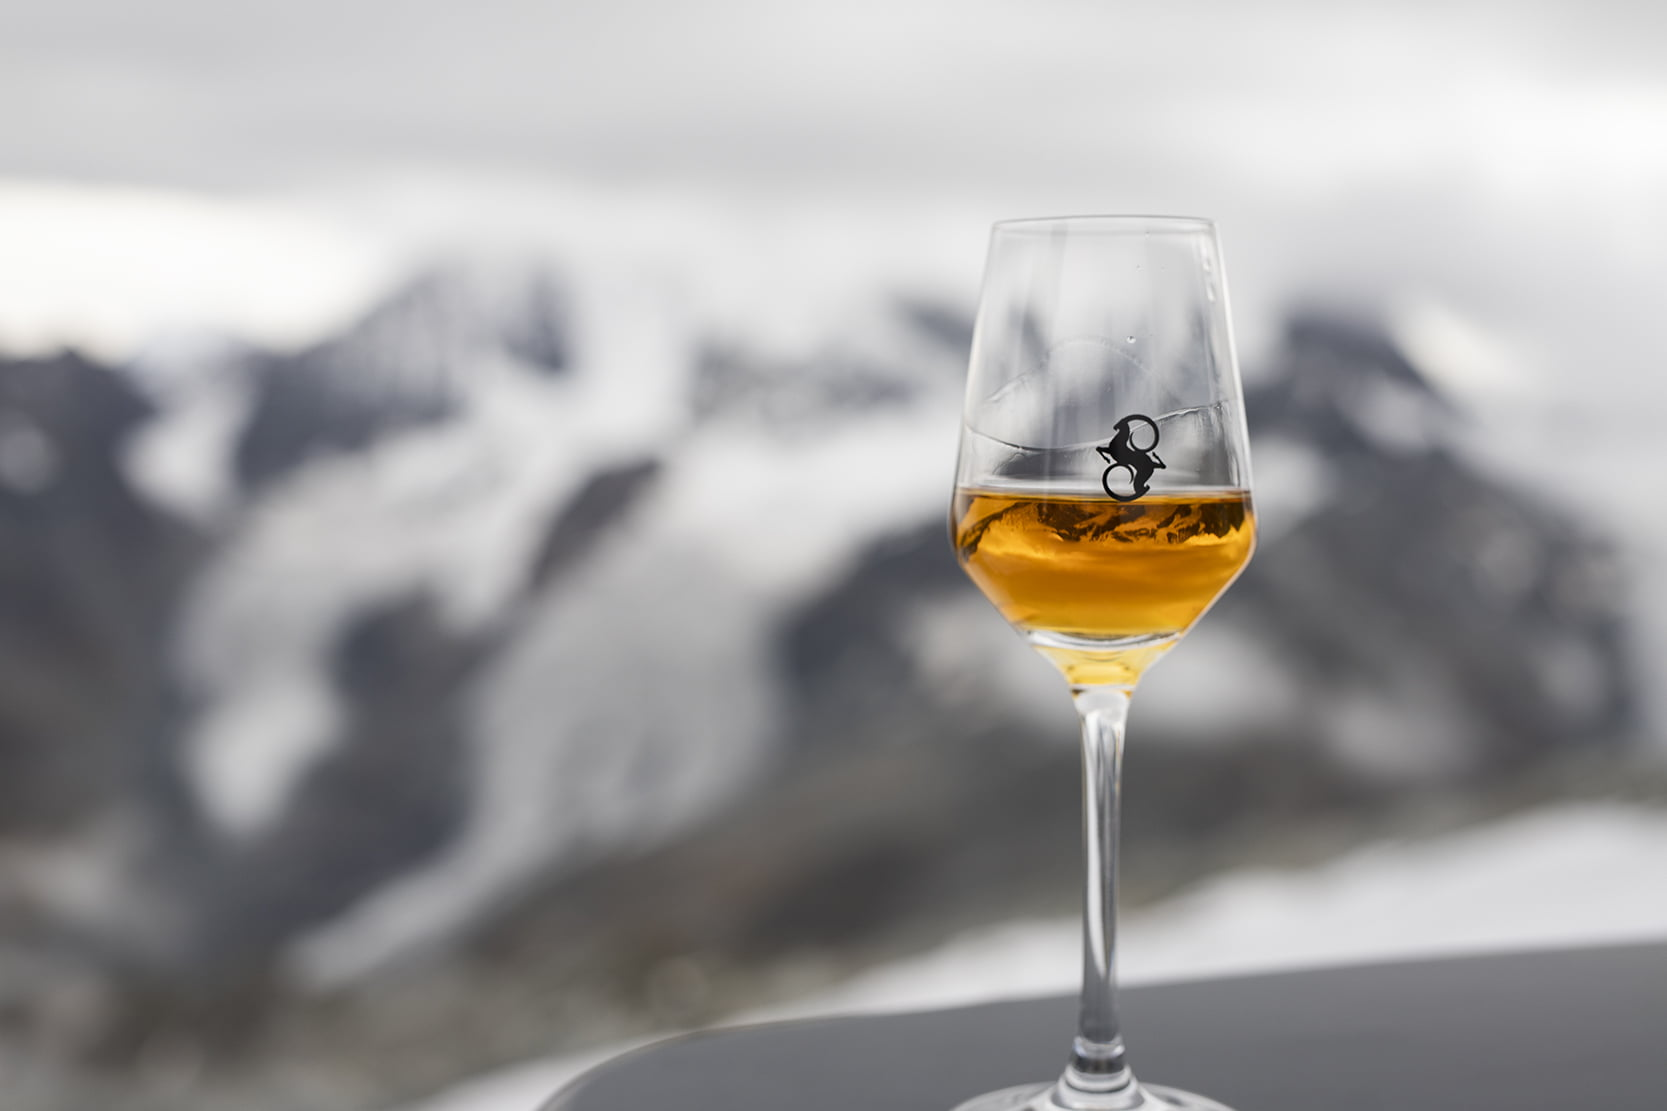 ORMA Whisky distillery on top of the mountain